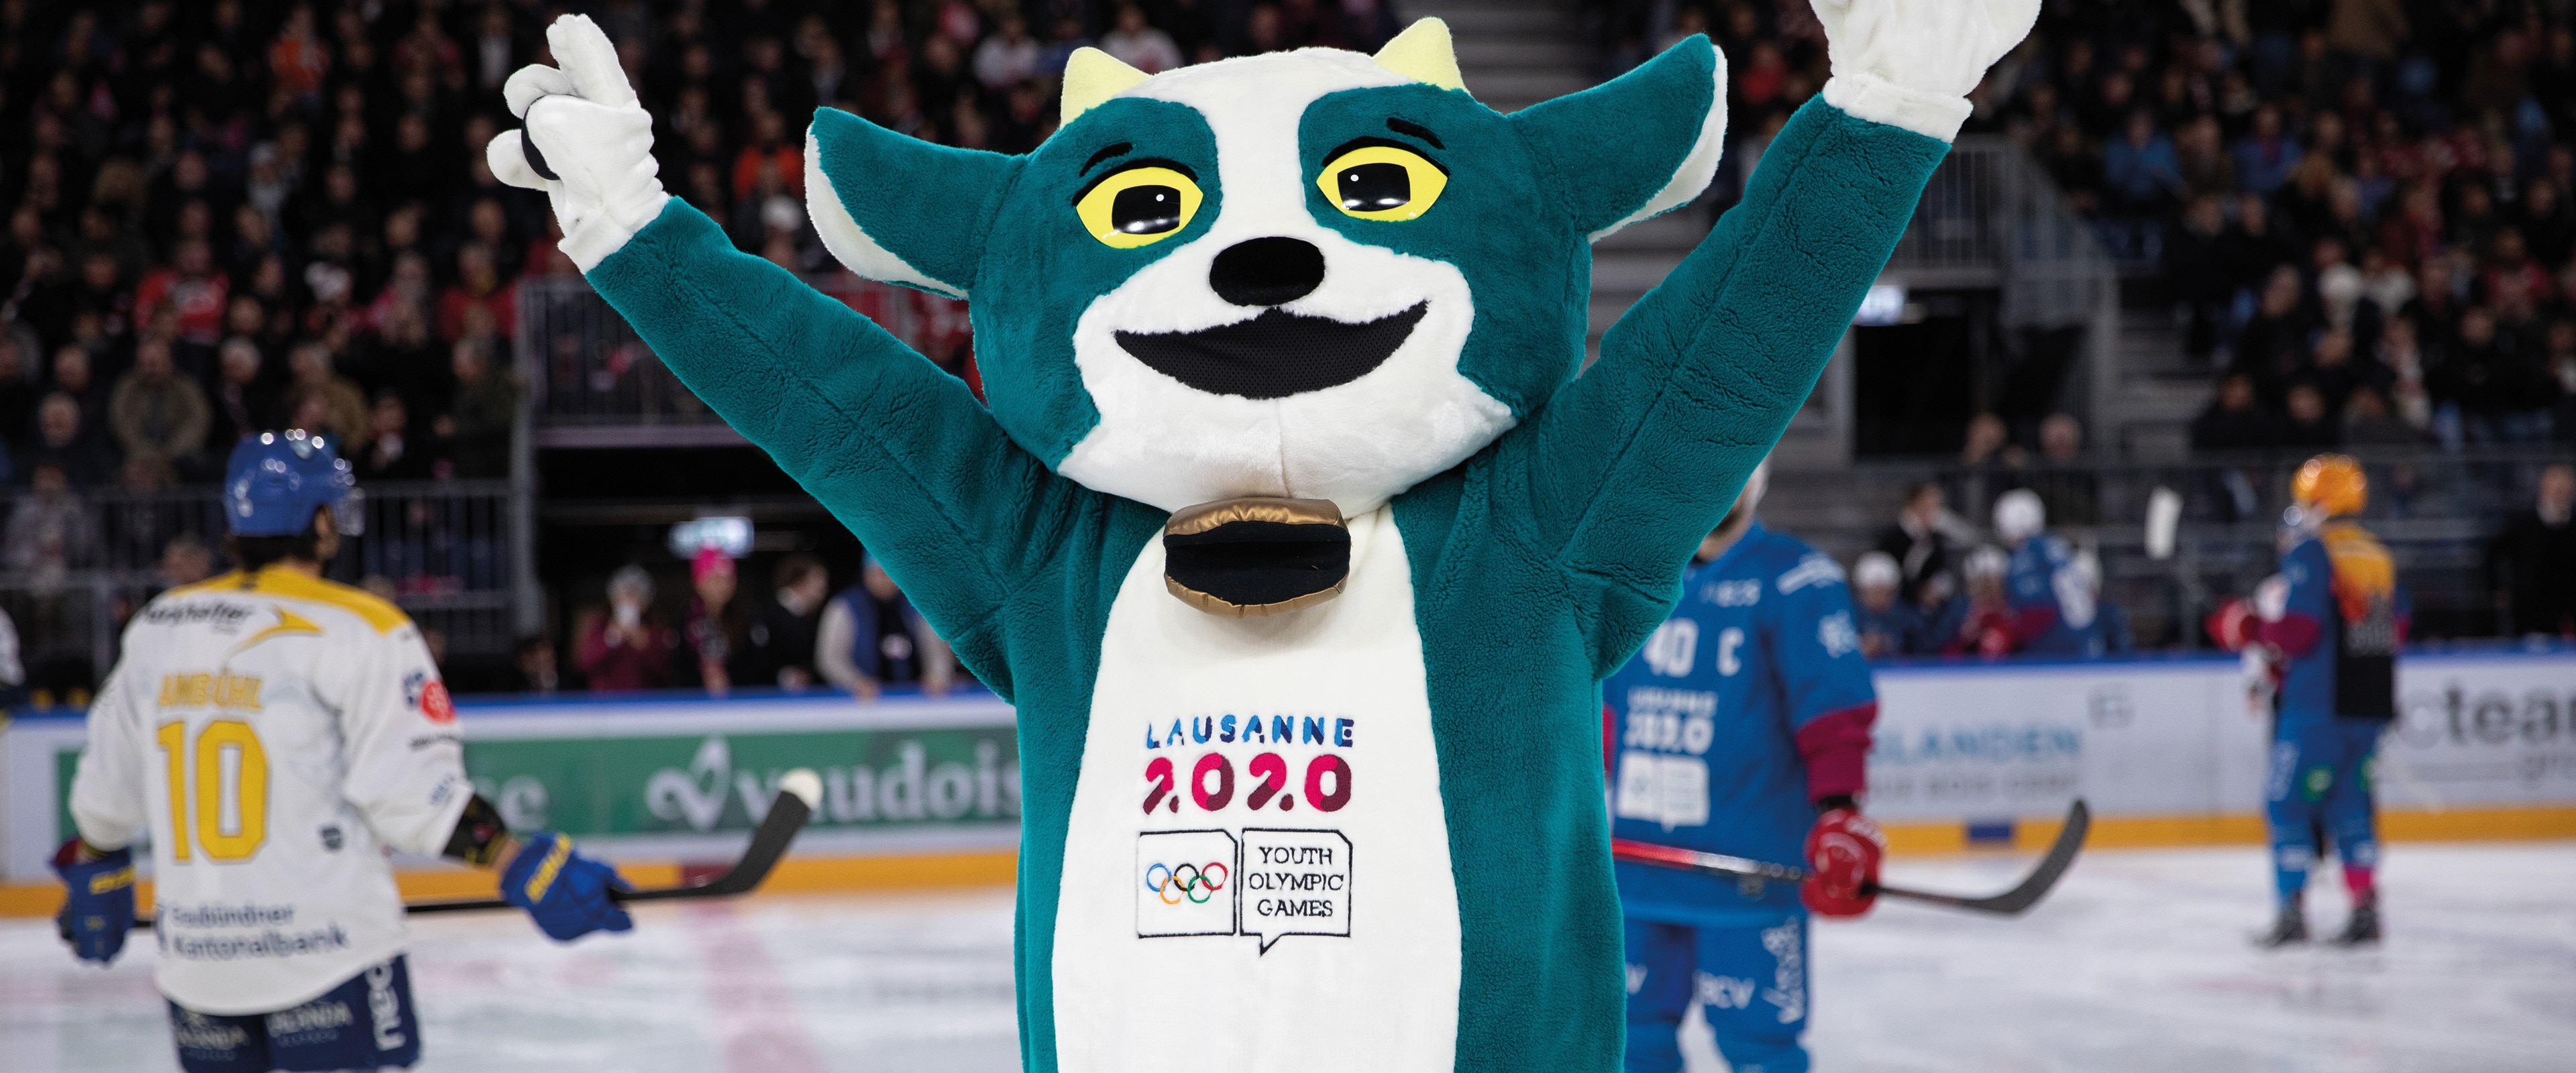 2020 Winter Olympic Teams.23 750 Swiss Pupils Take Lausanne 2020 Themed Exam Olympic